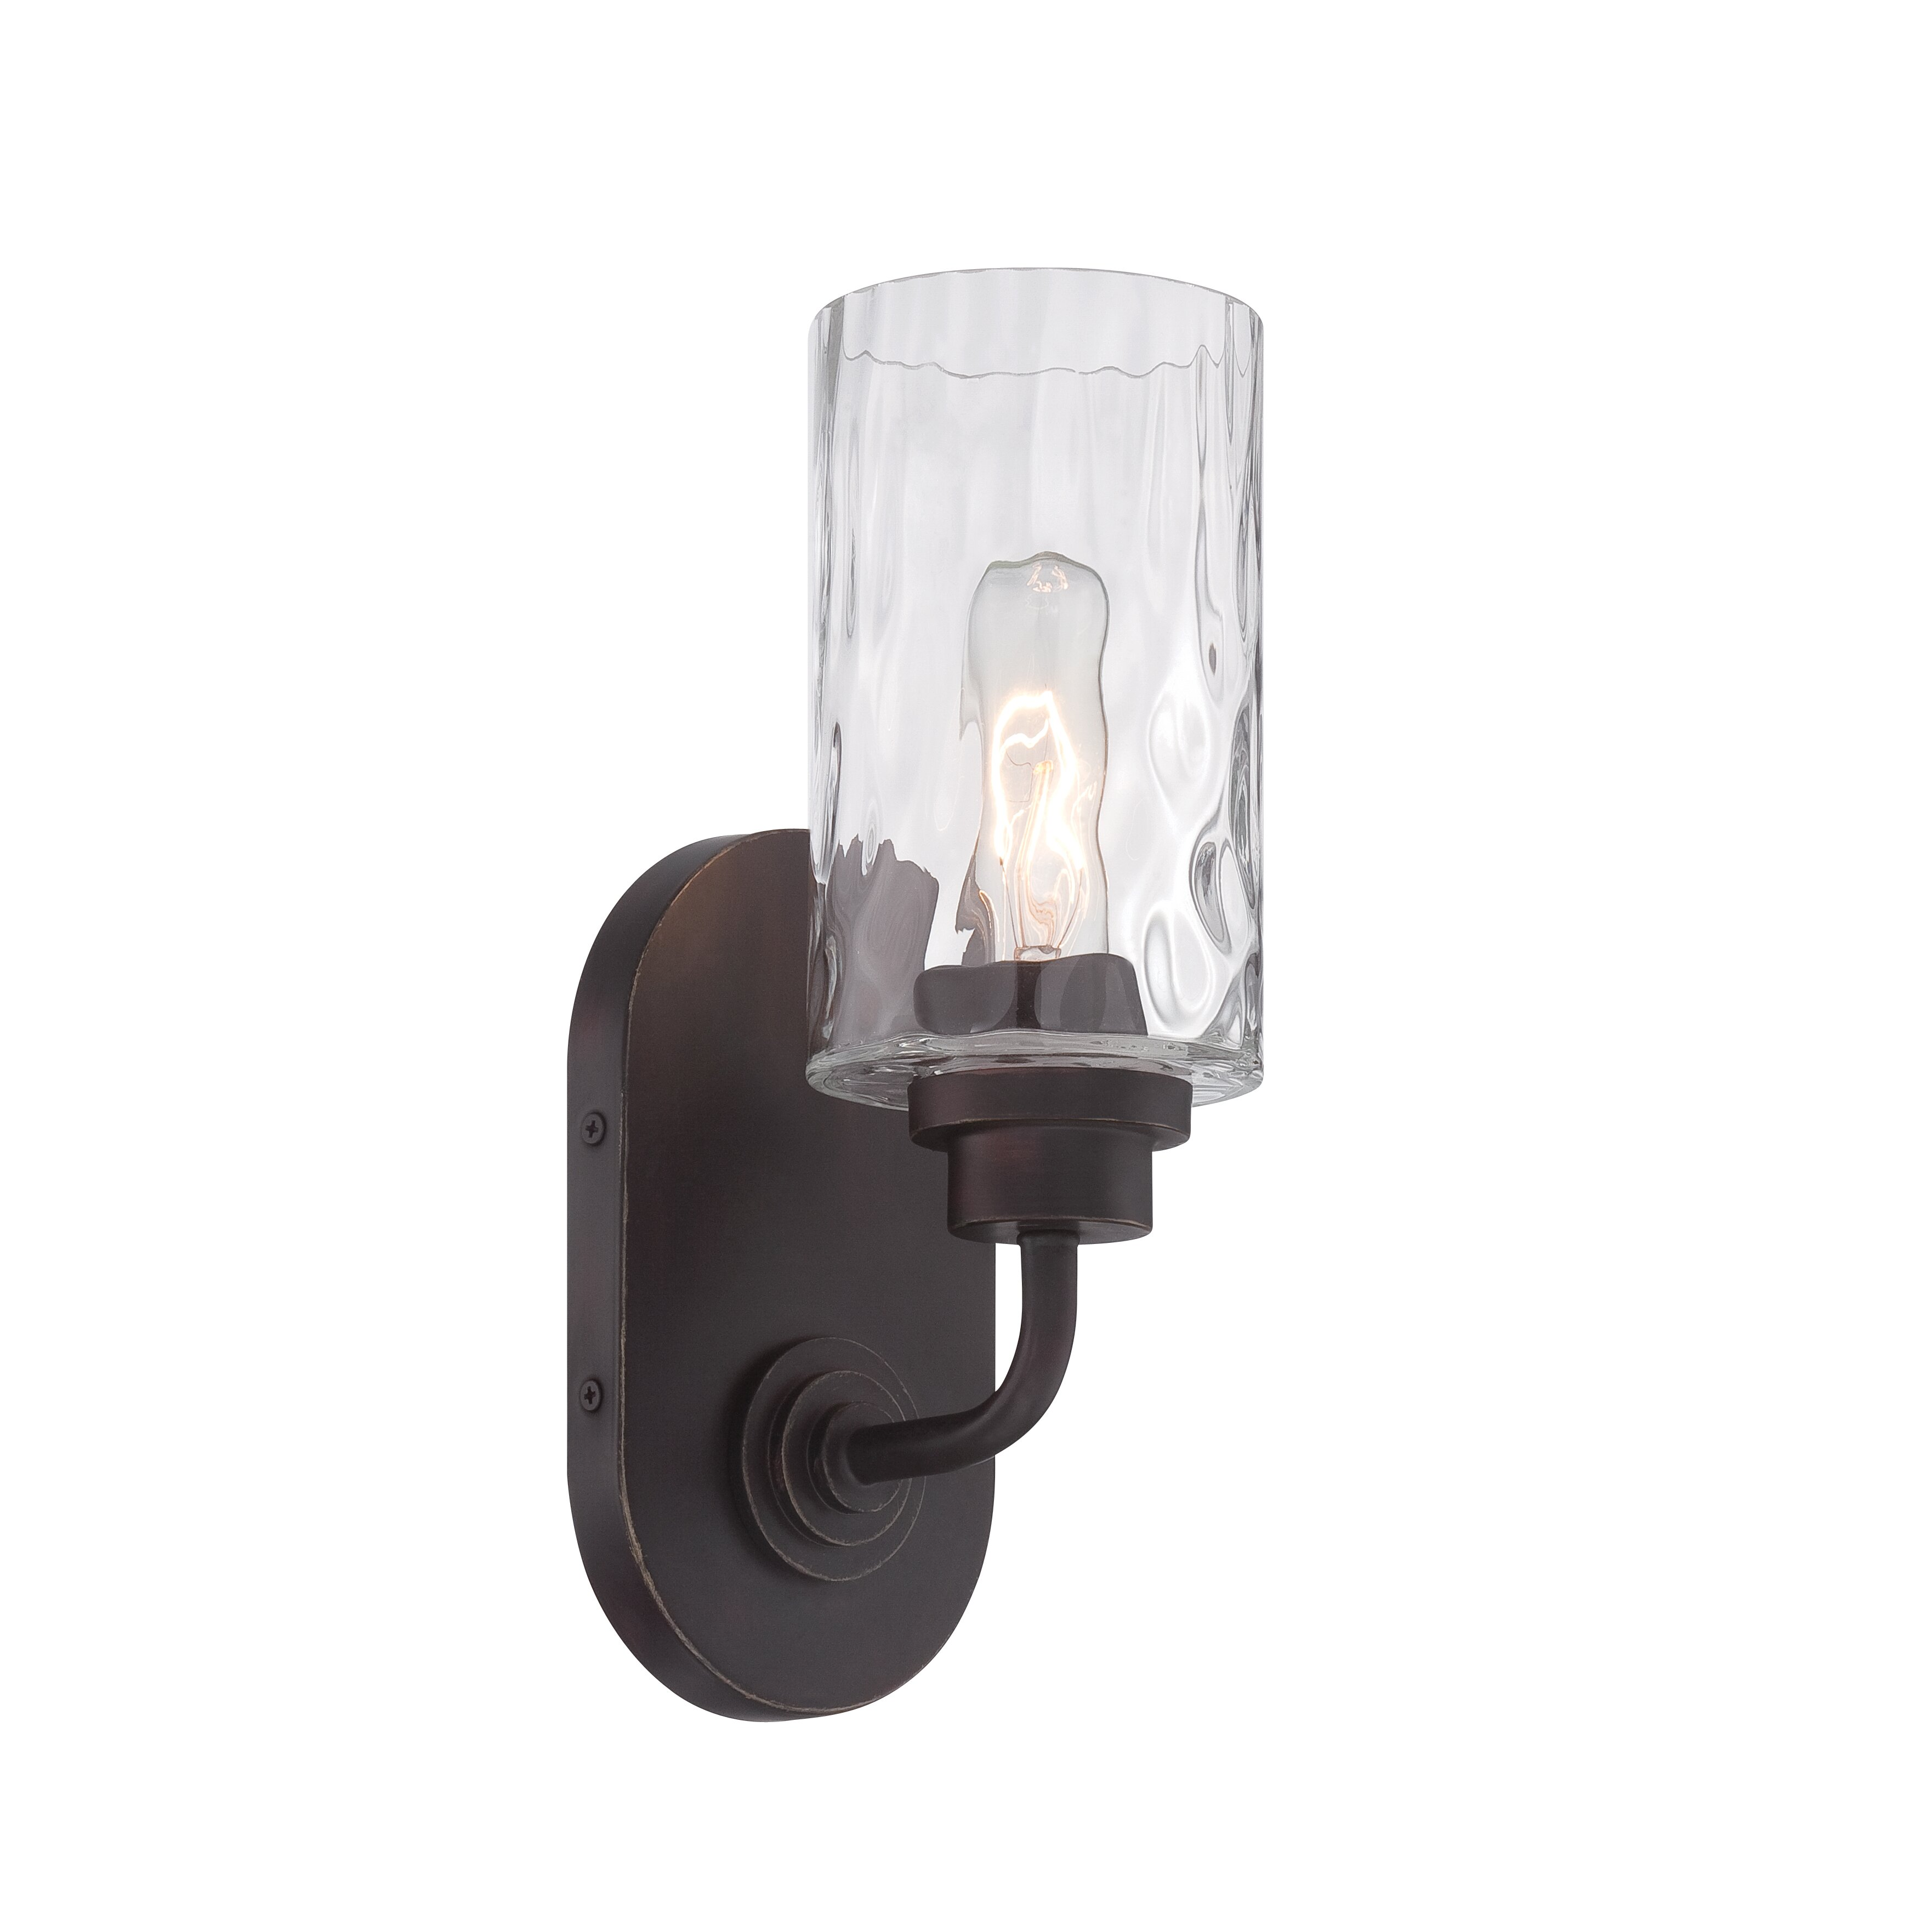 Lane Gramercy Park Bedroom Furniture Designers Fountain Gramercy Park 1 Light Armed Sconce Reviews